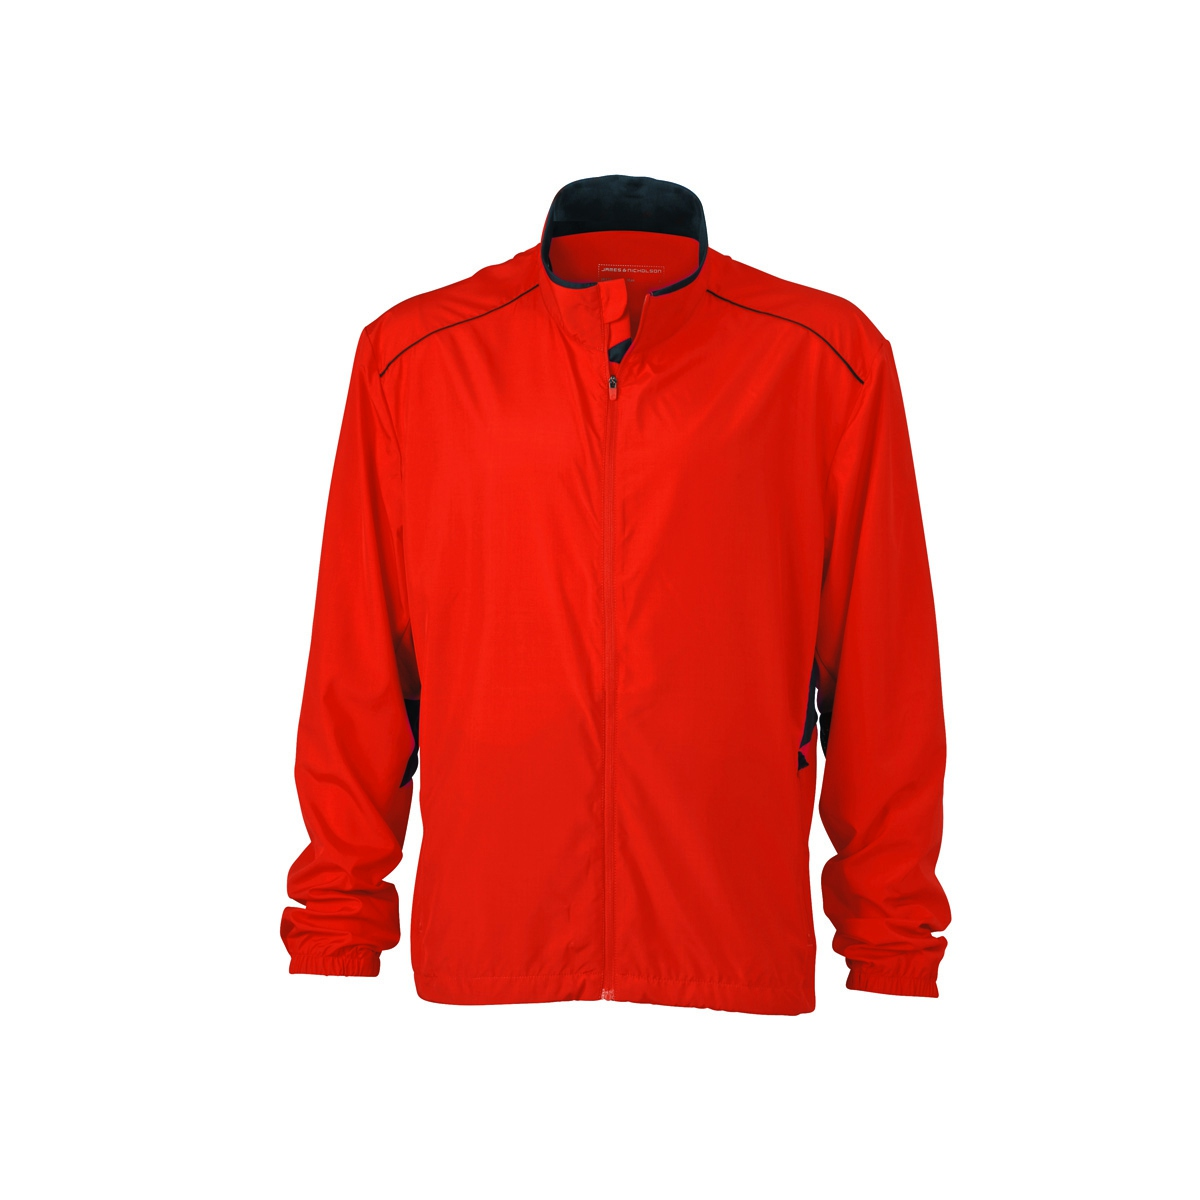 veste l g re running jogging jn476 rouge grenadine homme course pied. Black Bedroom Furniture Sets. Home Design Ideas